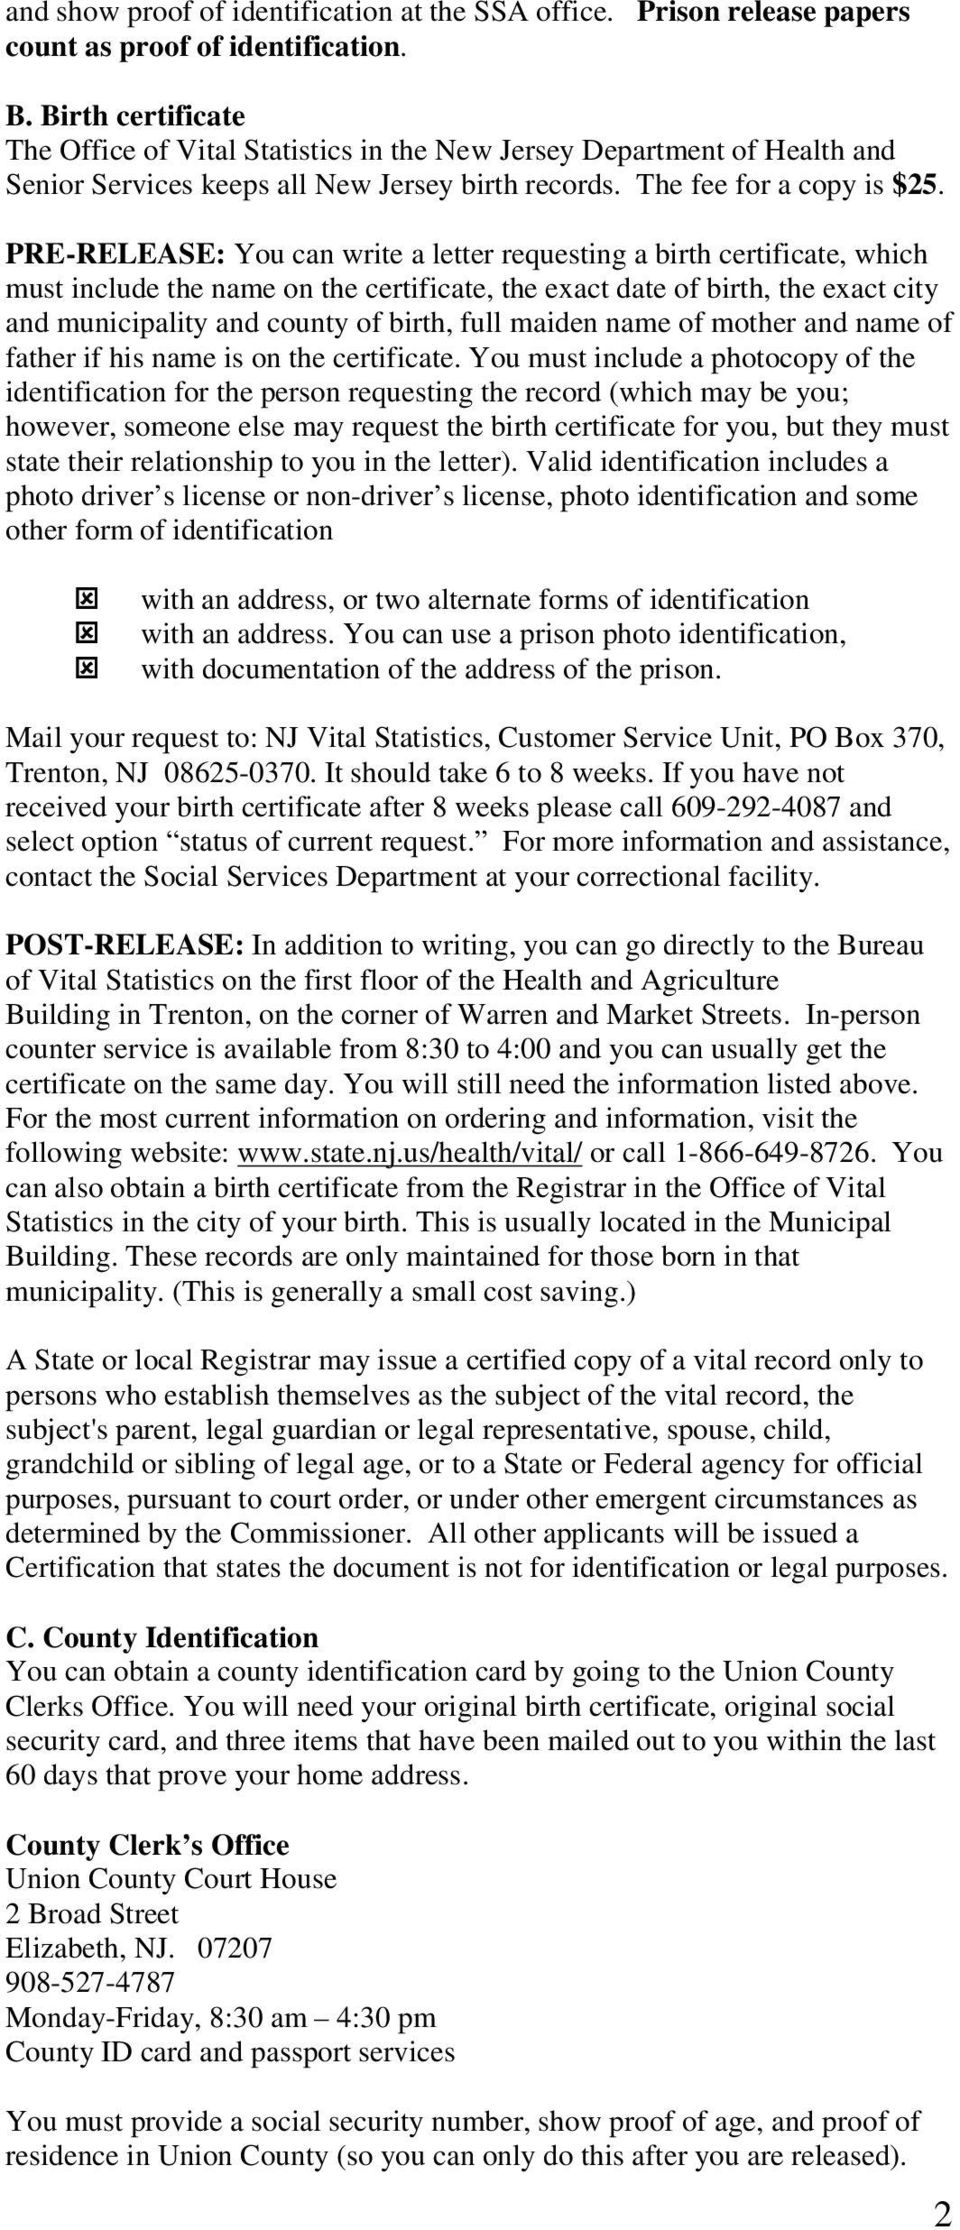 PRE-RELEASE: You can write a letter requesting a birth certificate, which must include the name on the certificate, the exact date of birth, the exact city and municipality and county of birth, full